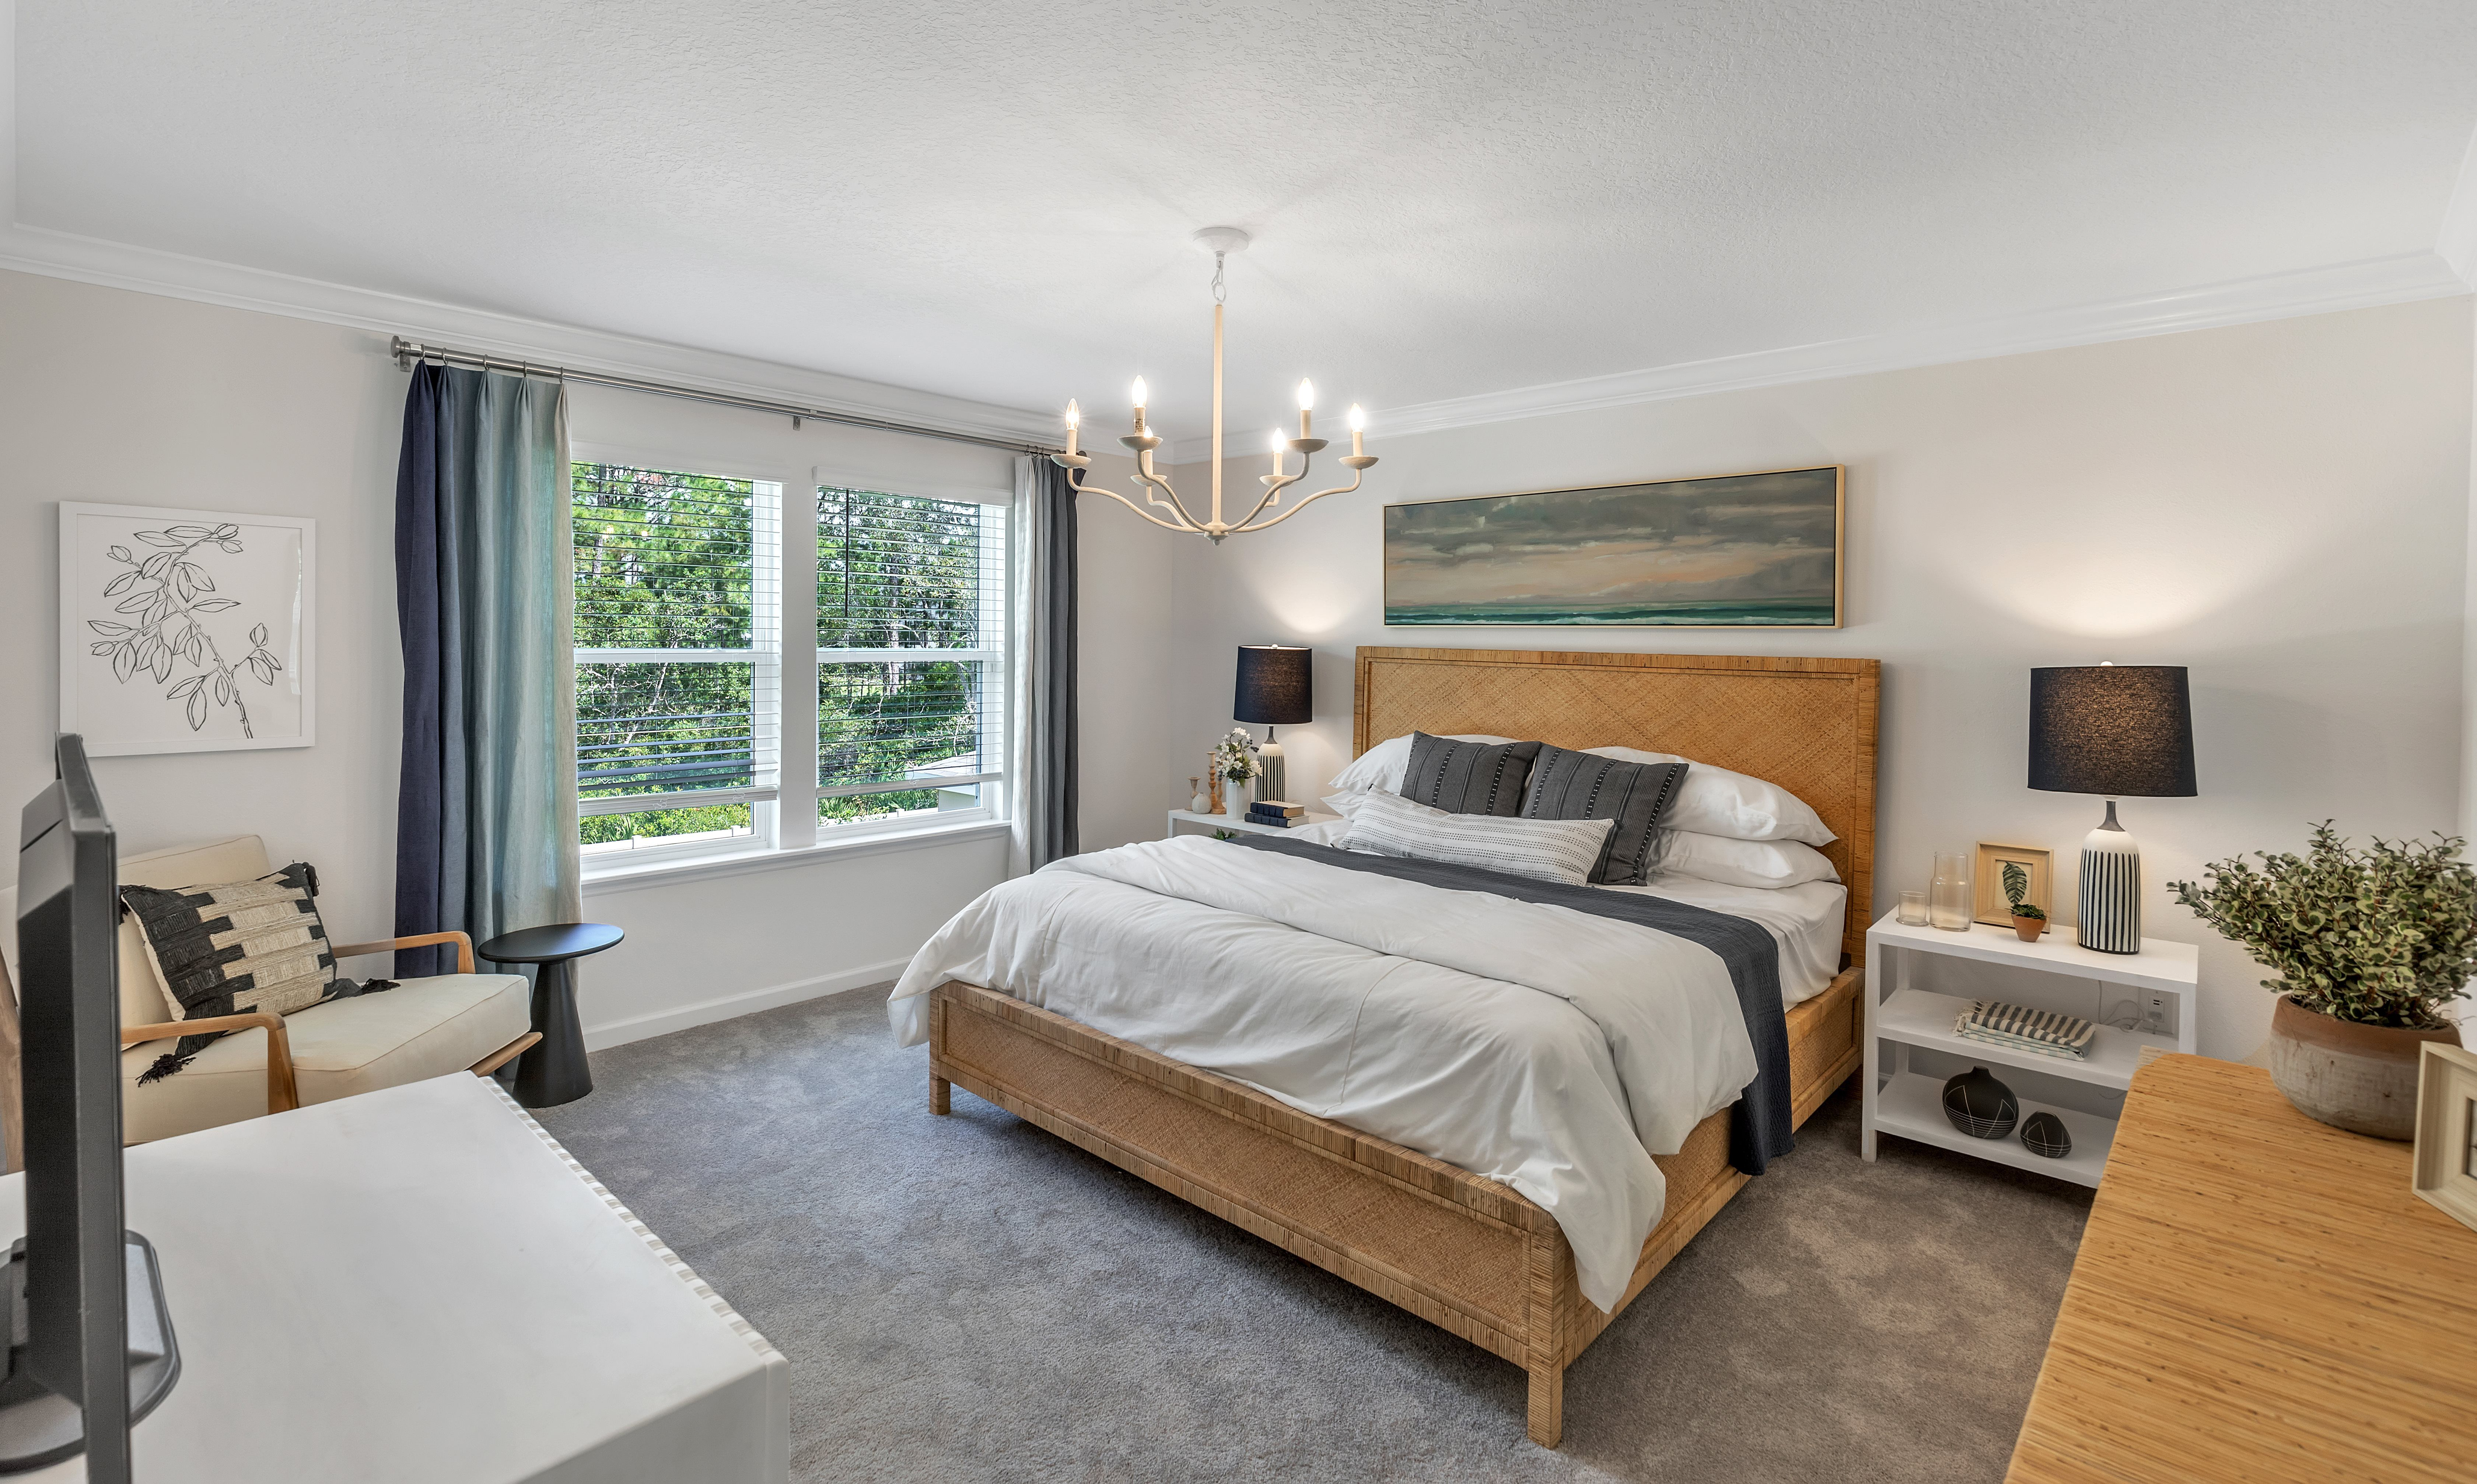 Bedroom featured in the BRIO By Lennar in Jacksonville-St. Augustine, FL